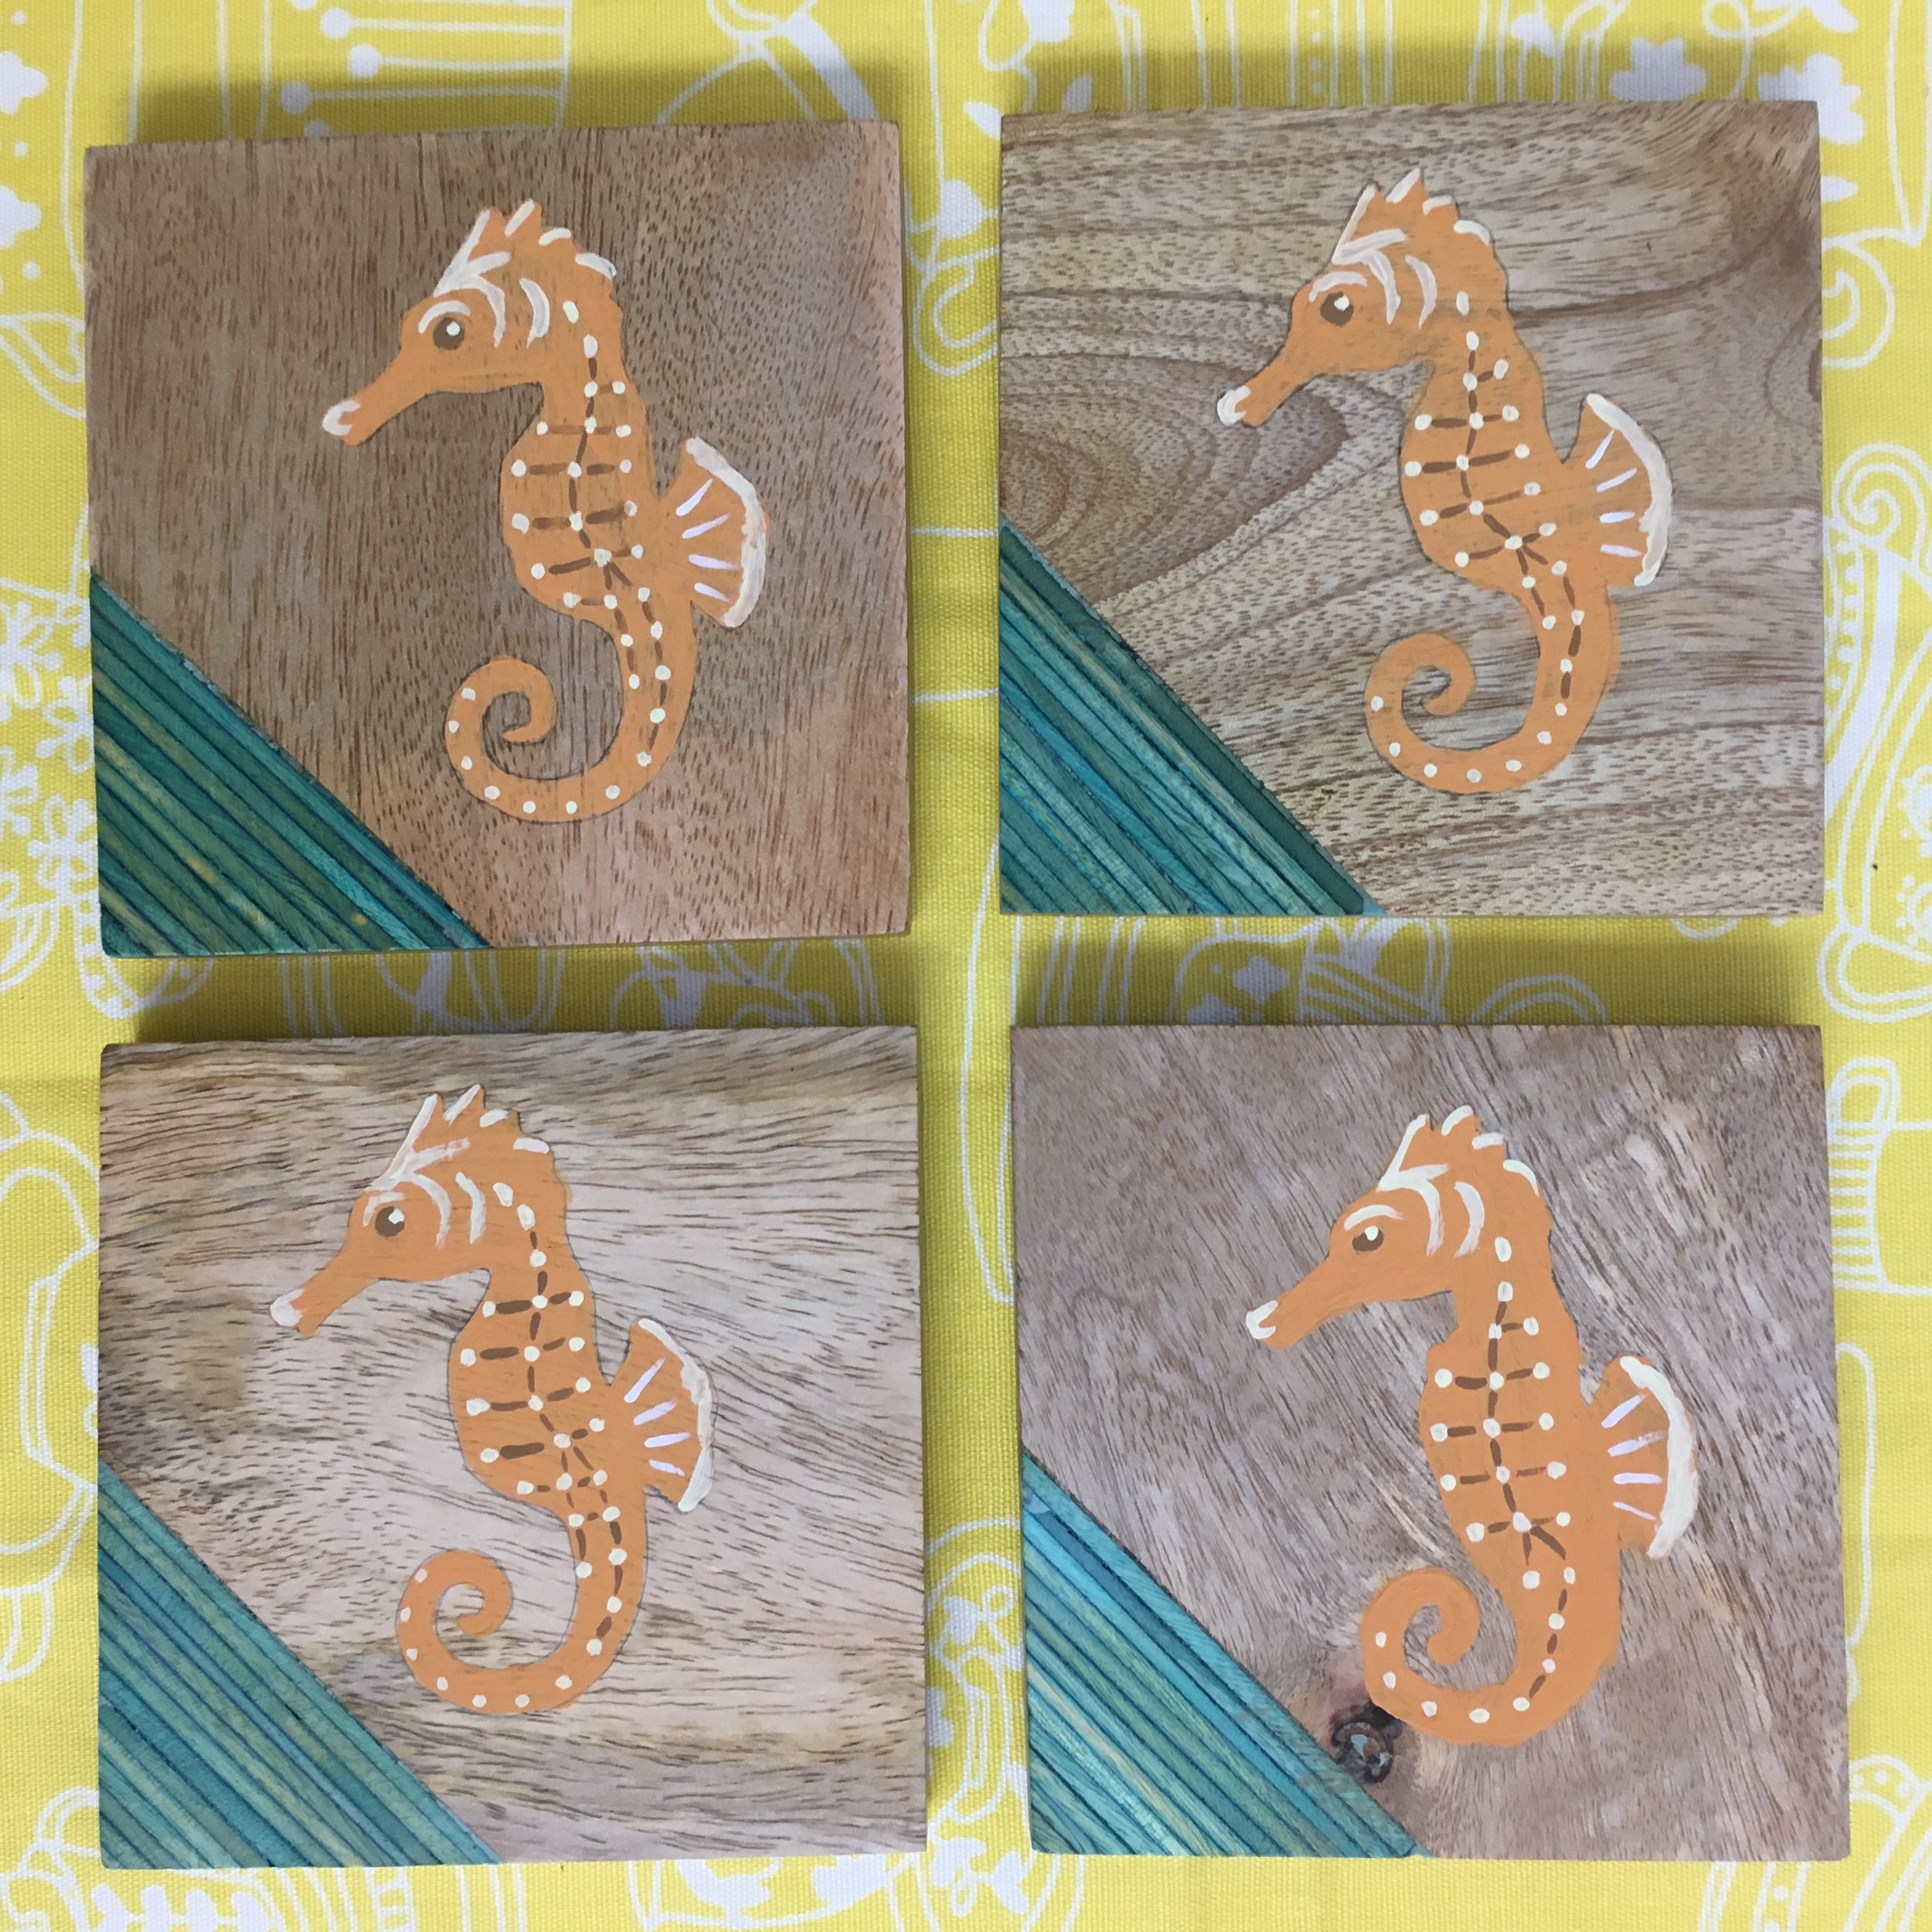 4.5 inch Seahorse Coaster Set - Keeping your table protected from moisture from glasses never looked so pretty! This set of four Seahorse coasters features a decorative sea-green striped inset on wood coasters with skid proof feet. Painted with milk paint and sealed with hard coat. These coasters are for decorative purposes only and not suitable for direct food contact. Wipe clean with a damp cloth, do not soak or put in the dishwasher.$25, plus sales tax and shipping